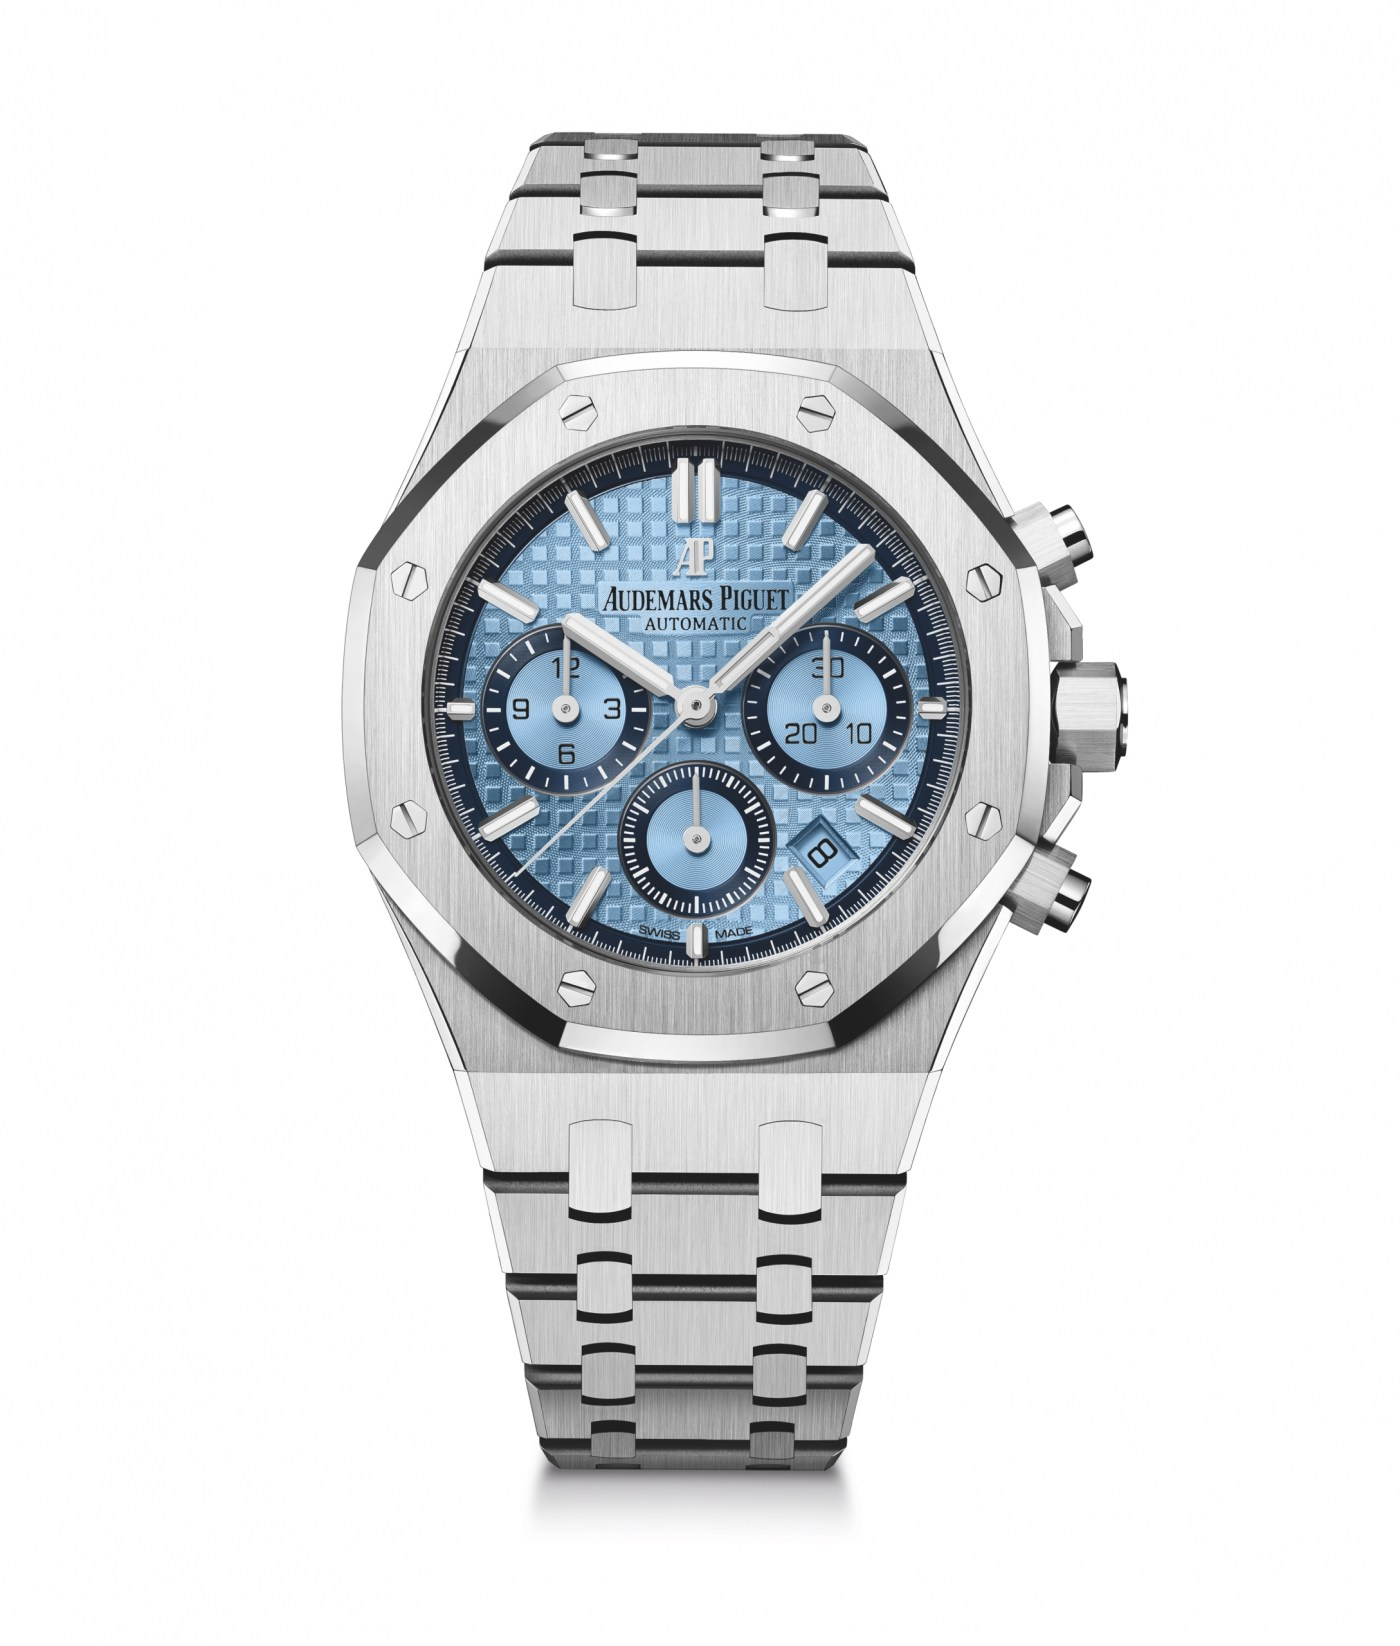 Audemars Piguet Royal Oak Self-Winding Chronograph Limited Edition front